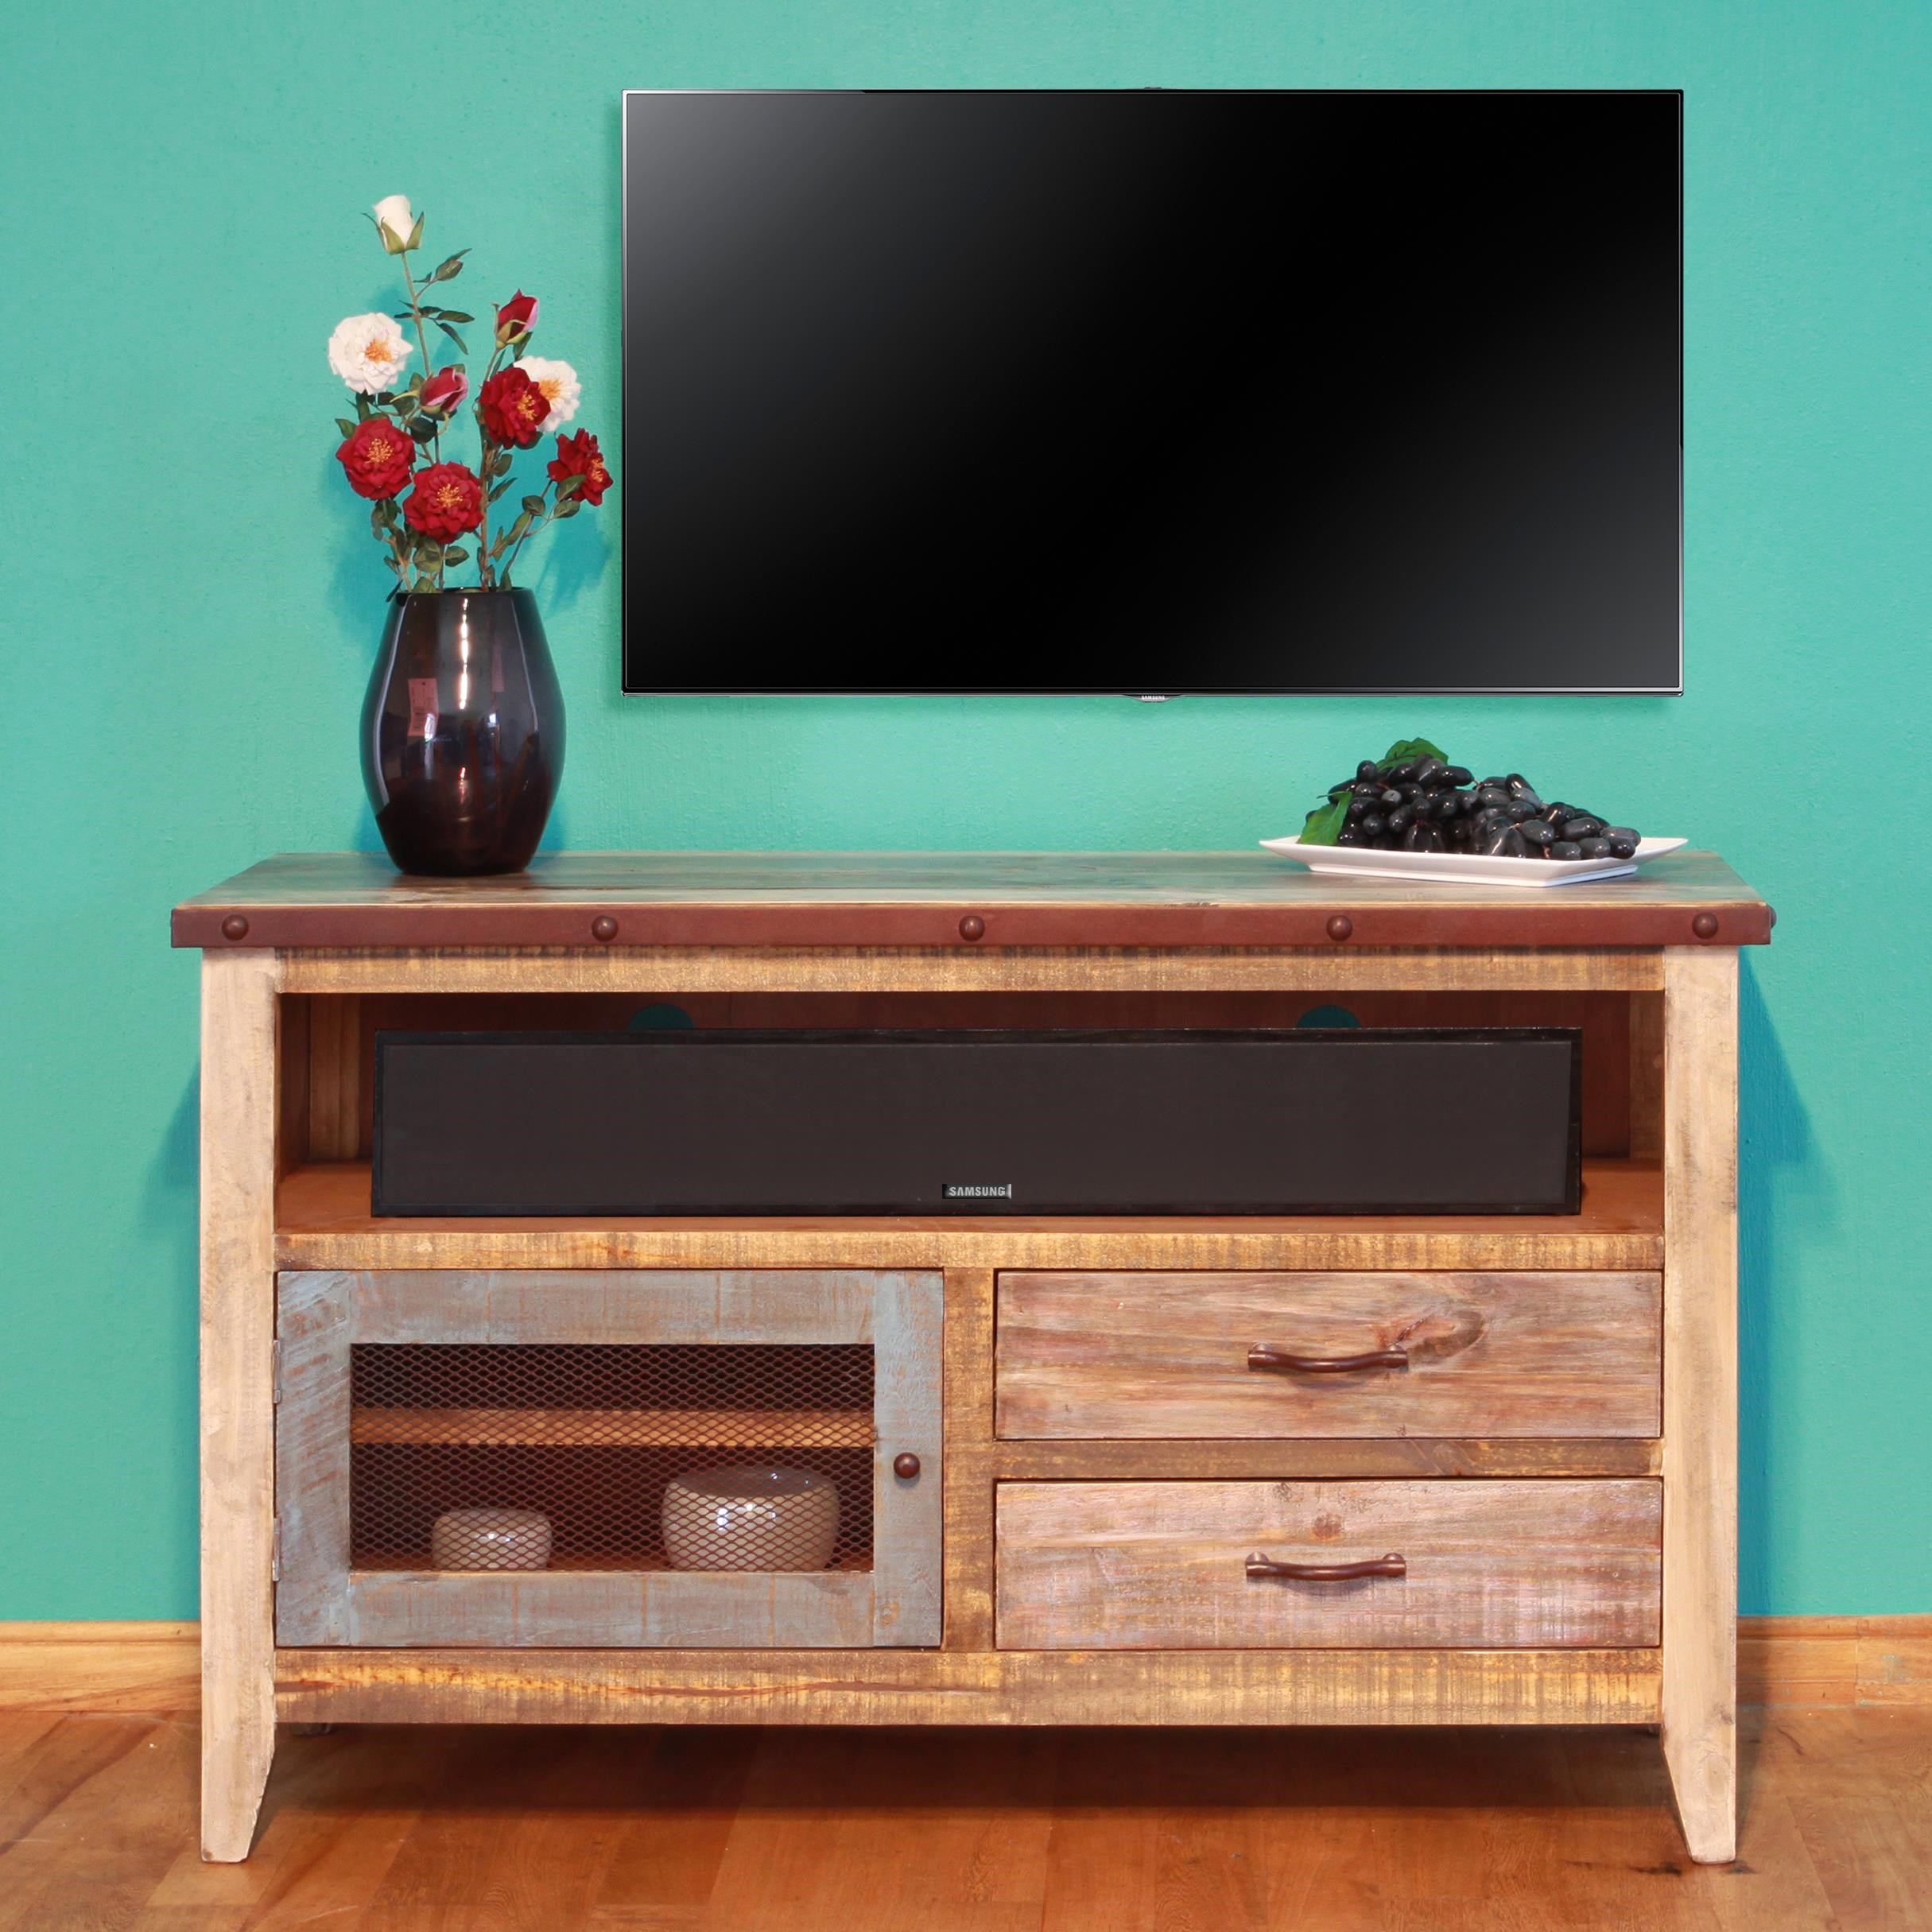 International Furniture Direct 900 Antique Solid Pine 52u0026quot; TV Stand - Furniture and ApplianceMart ...